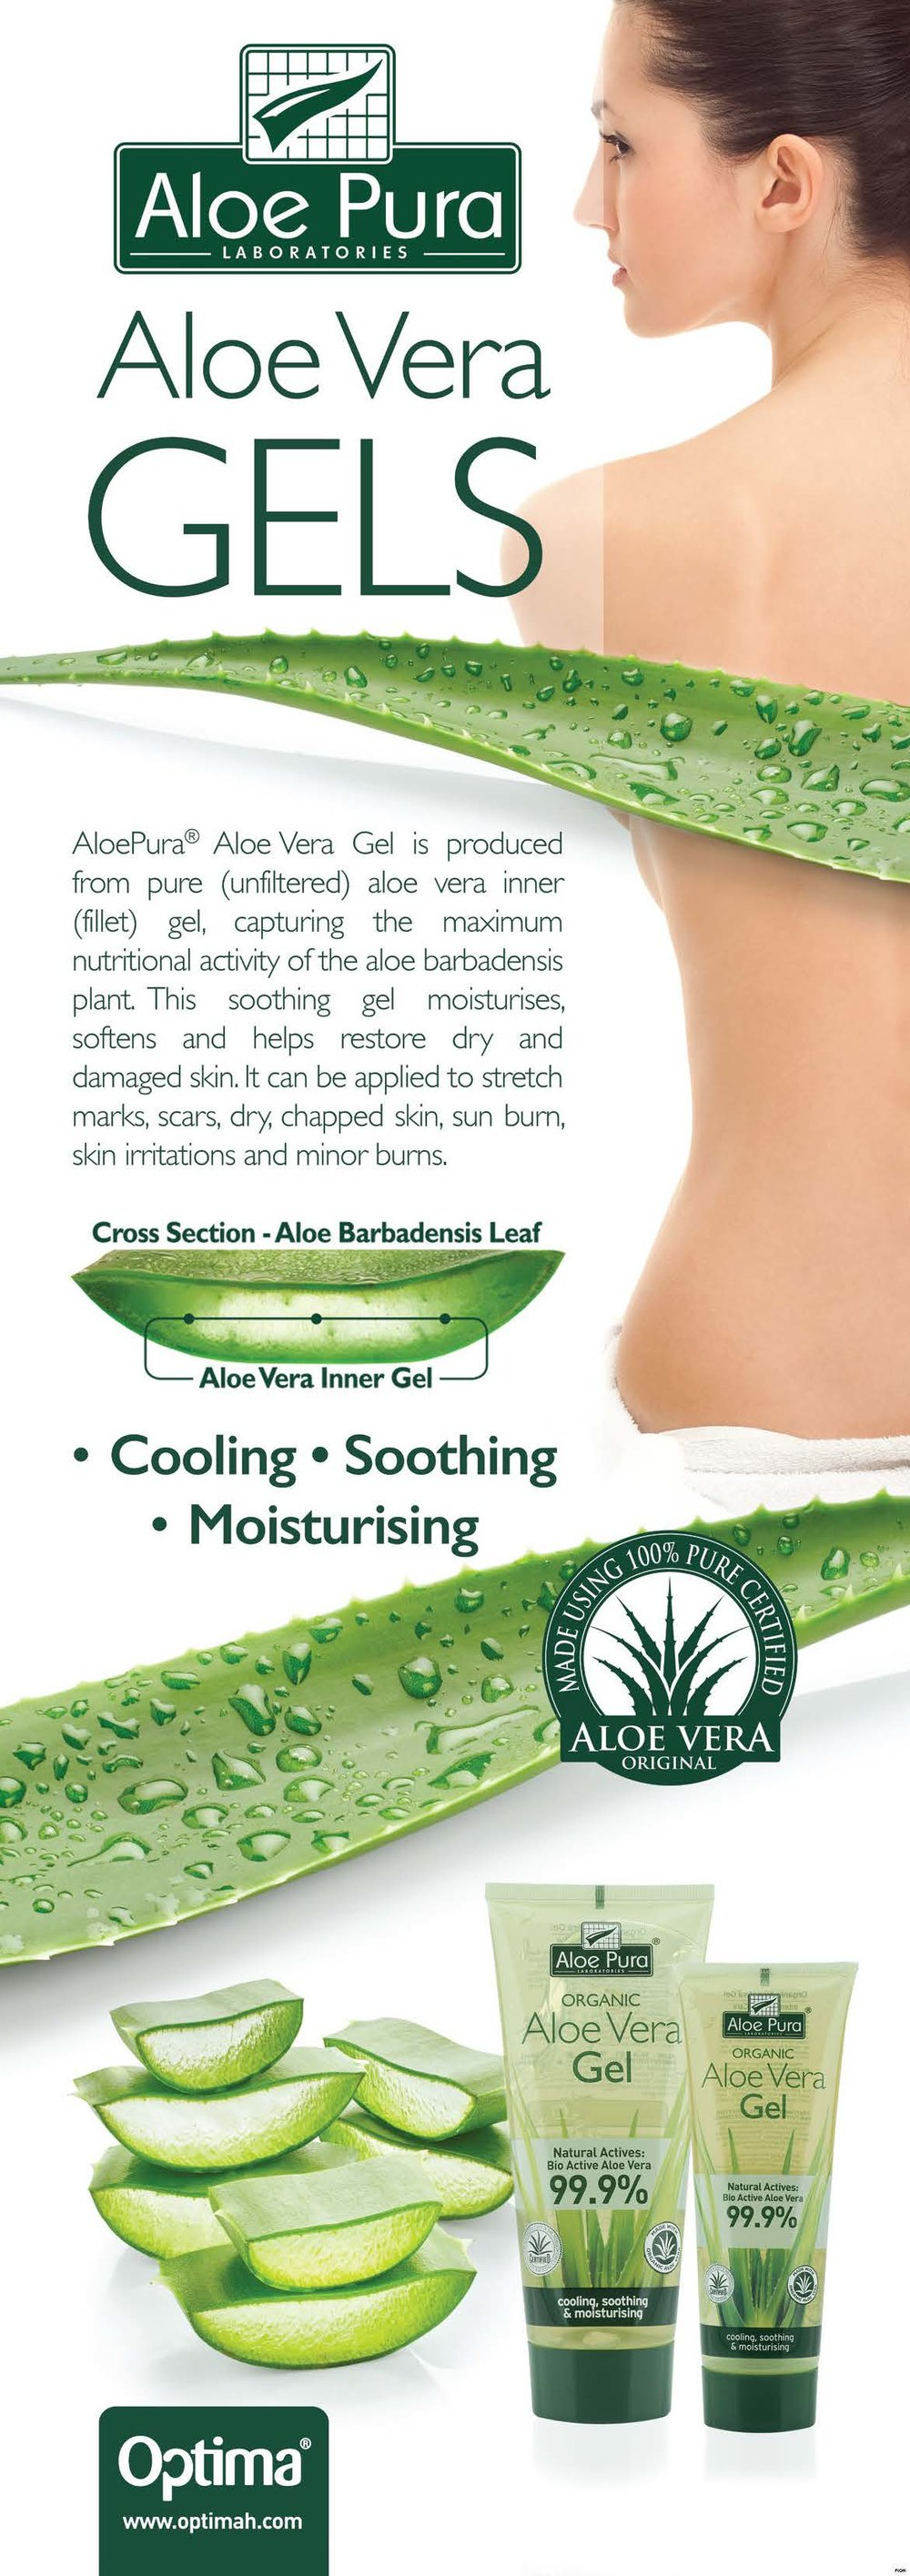 Aloe Pura Gel (Optima)